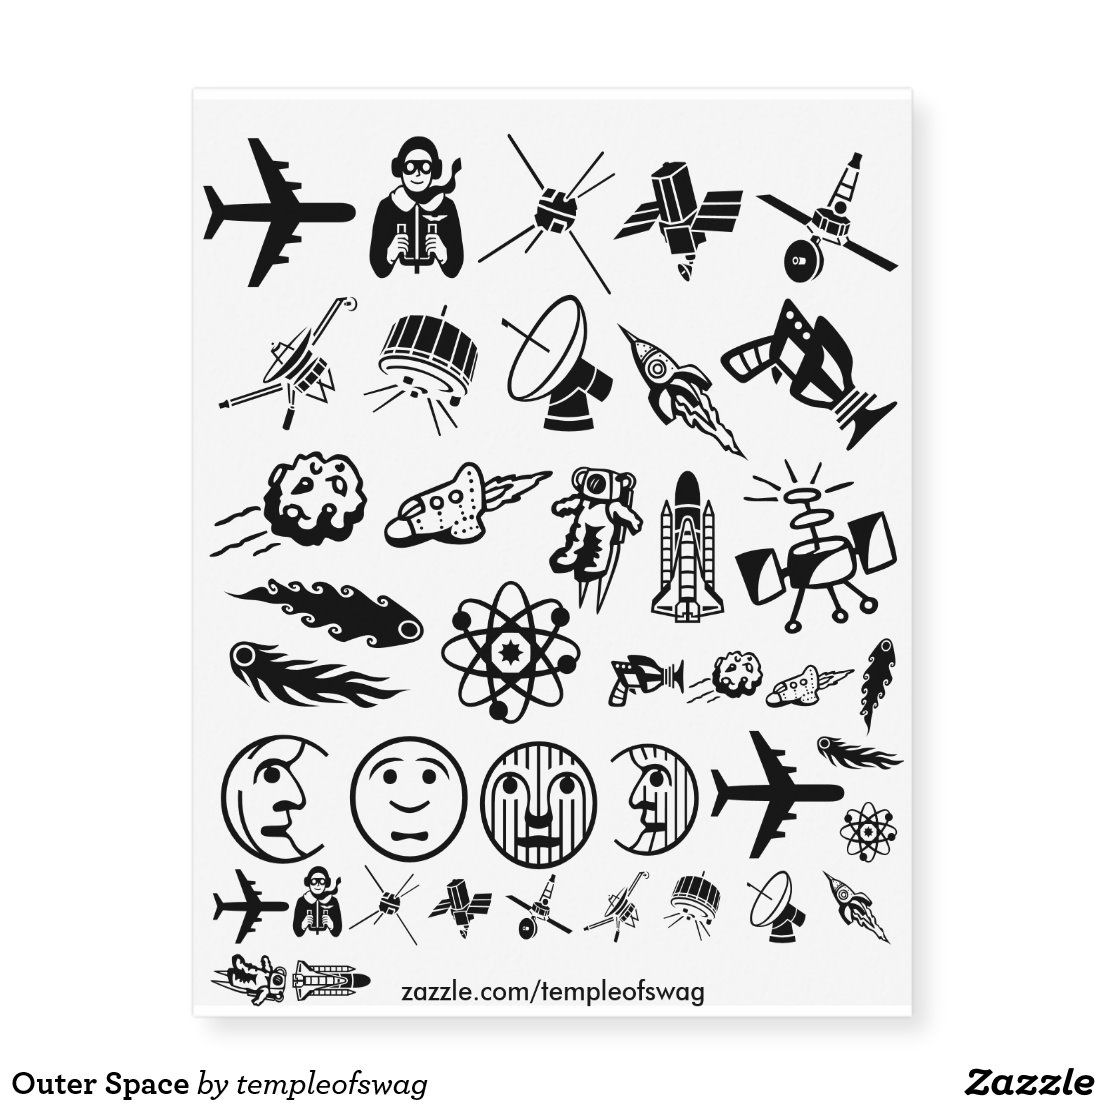 Outer Space Temporary Tattoos | Zazzle.com in 2020 | Outer ...